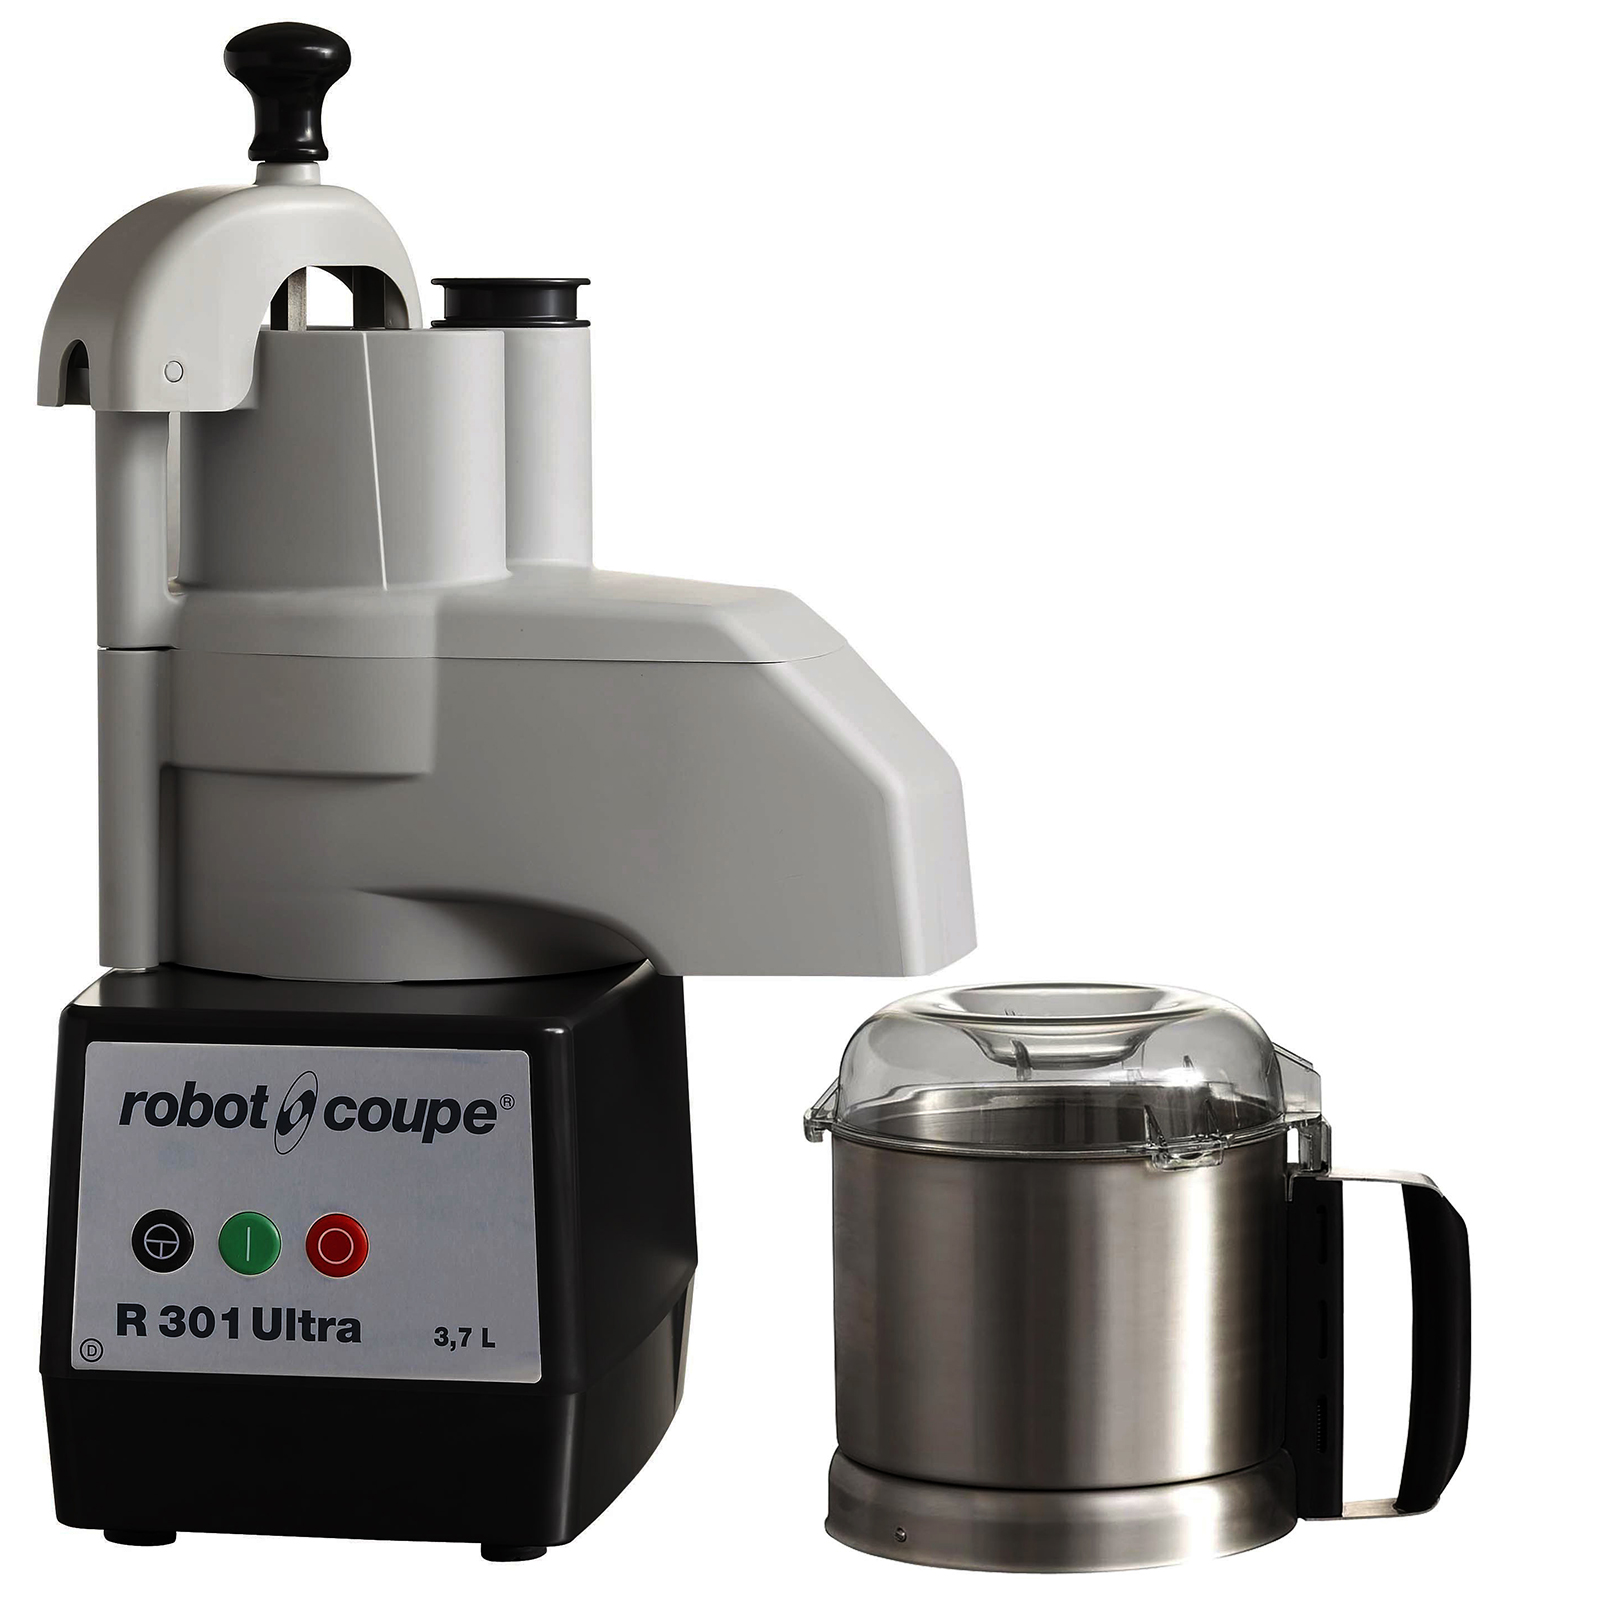 Robot Coupe R301 ULTRA food processor, benchtop / countertop